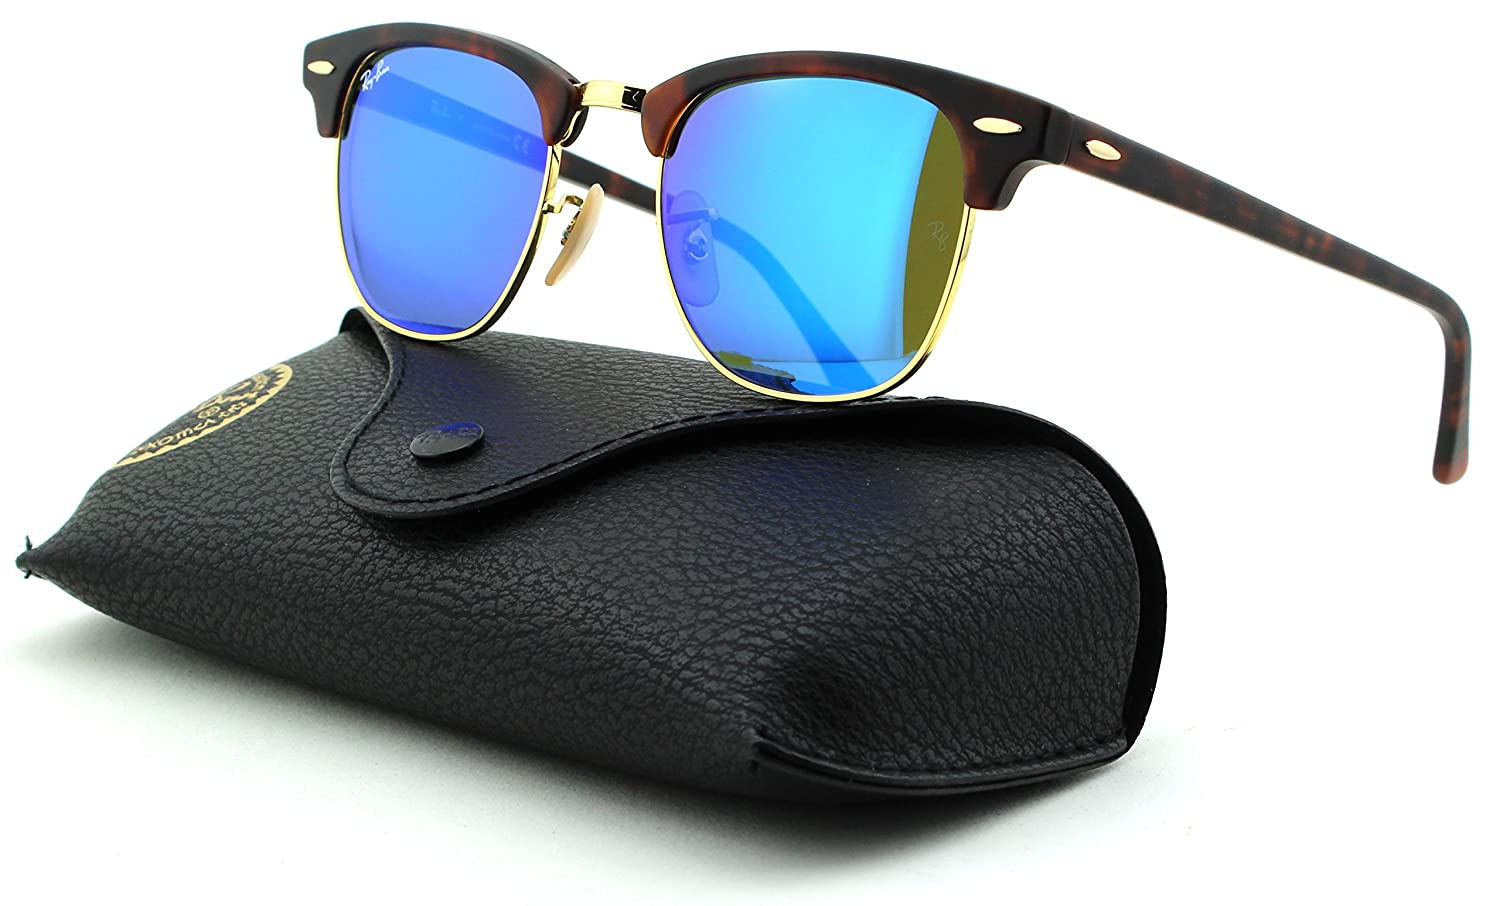 509996ac2a Amazon.com  Ray-Ban RB3016 Clubmaster Mirror Unisex Sunglasses (Sand Havana  Gold Frame Grey Mirror Blue Lens 114517